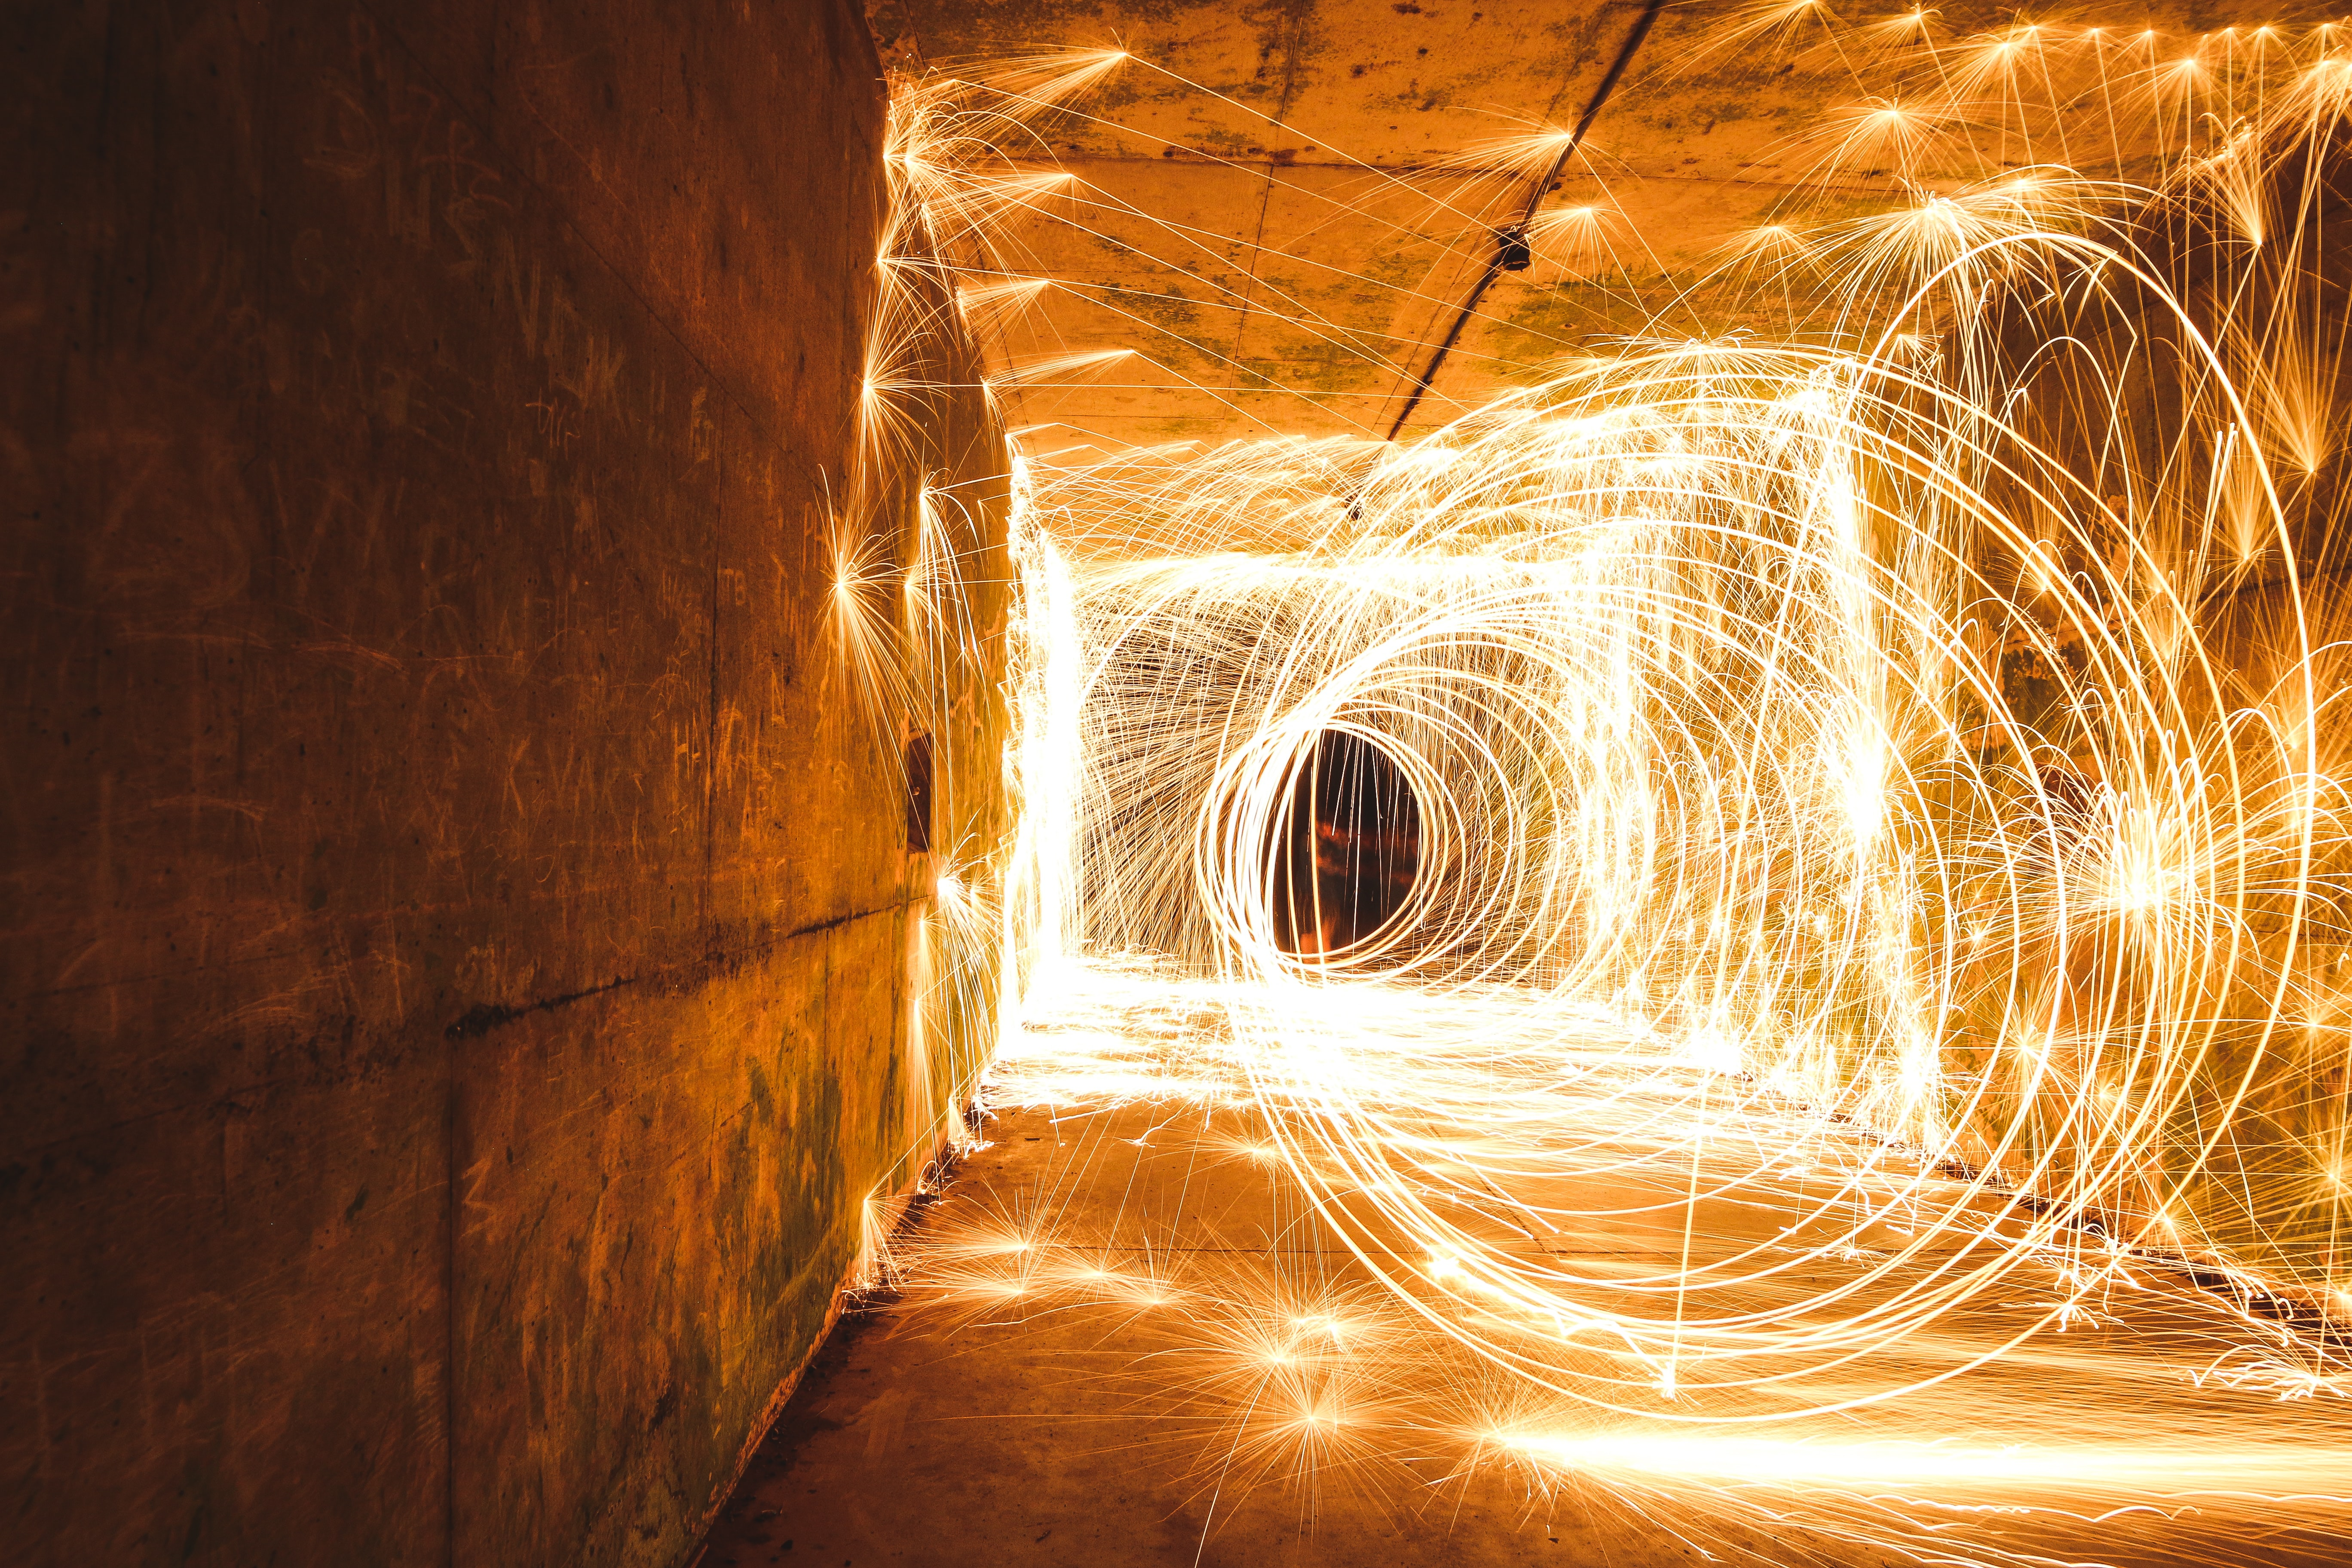 time lapse photography of steel wool